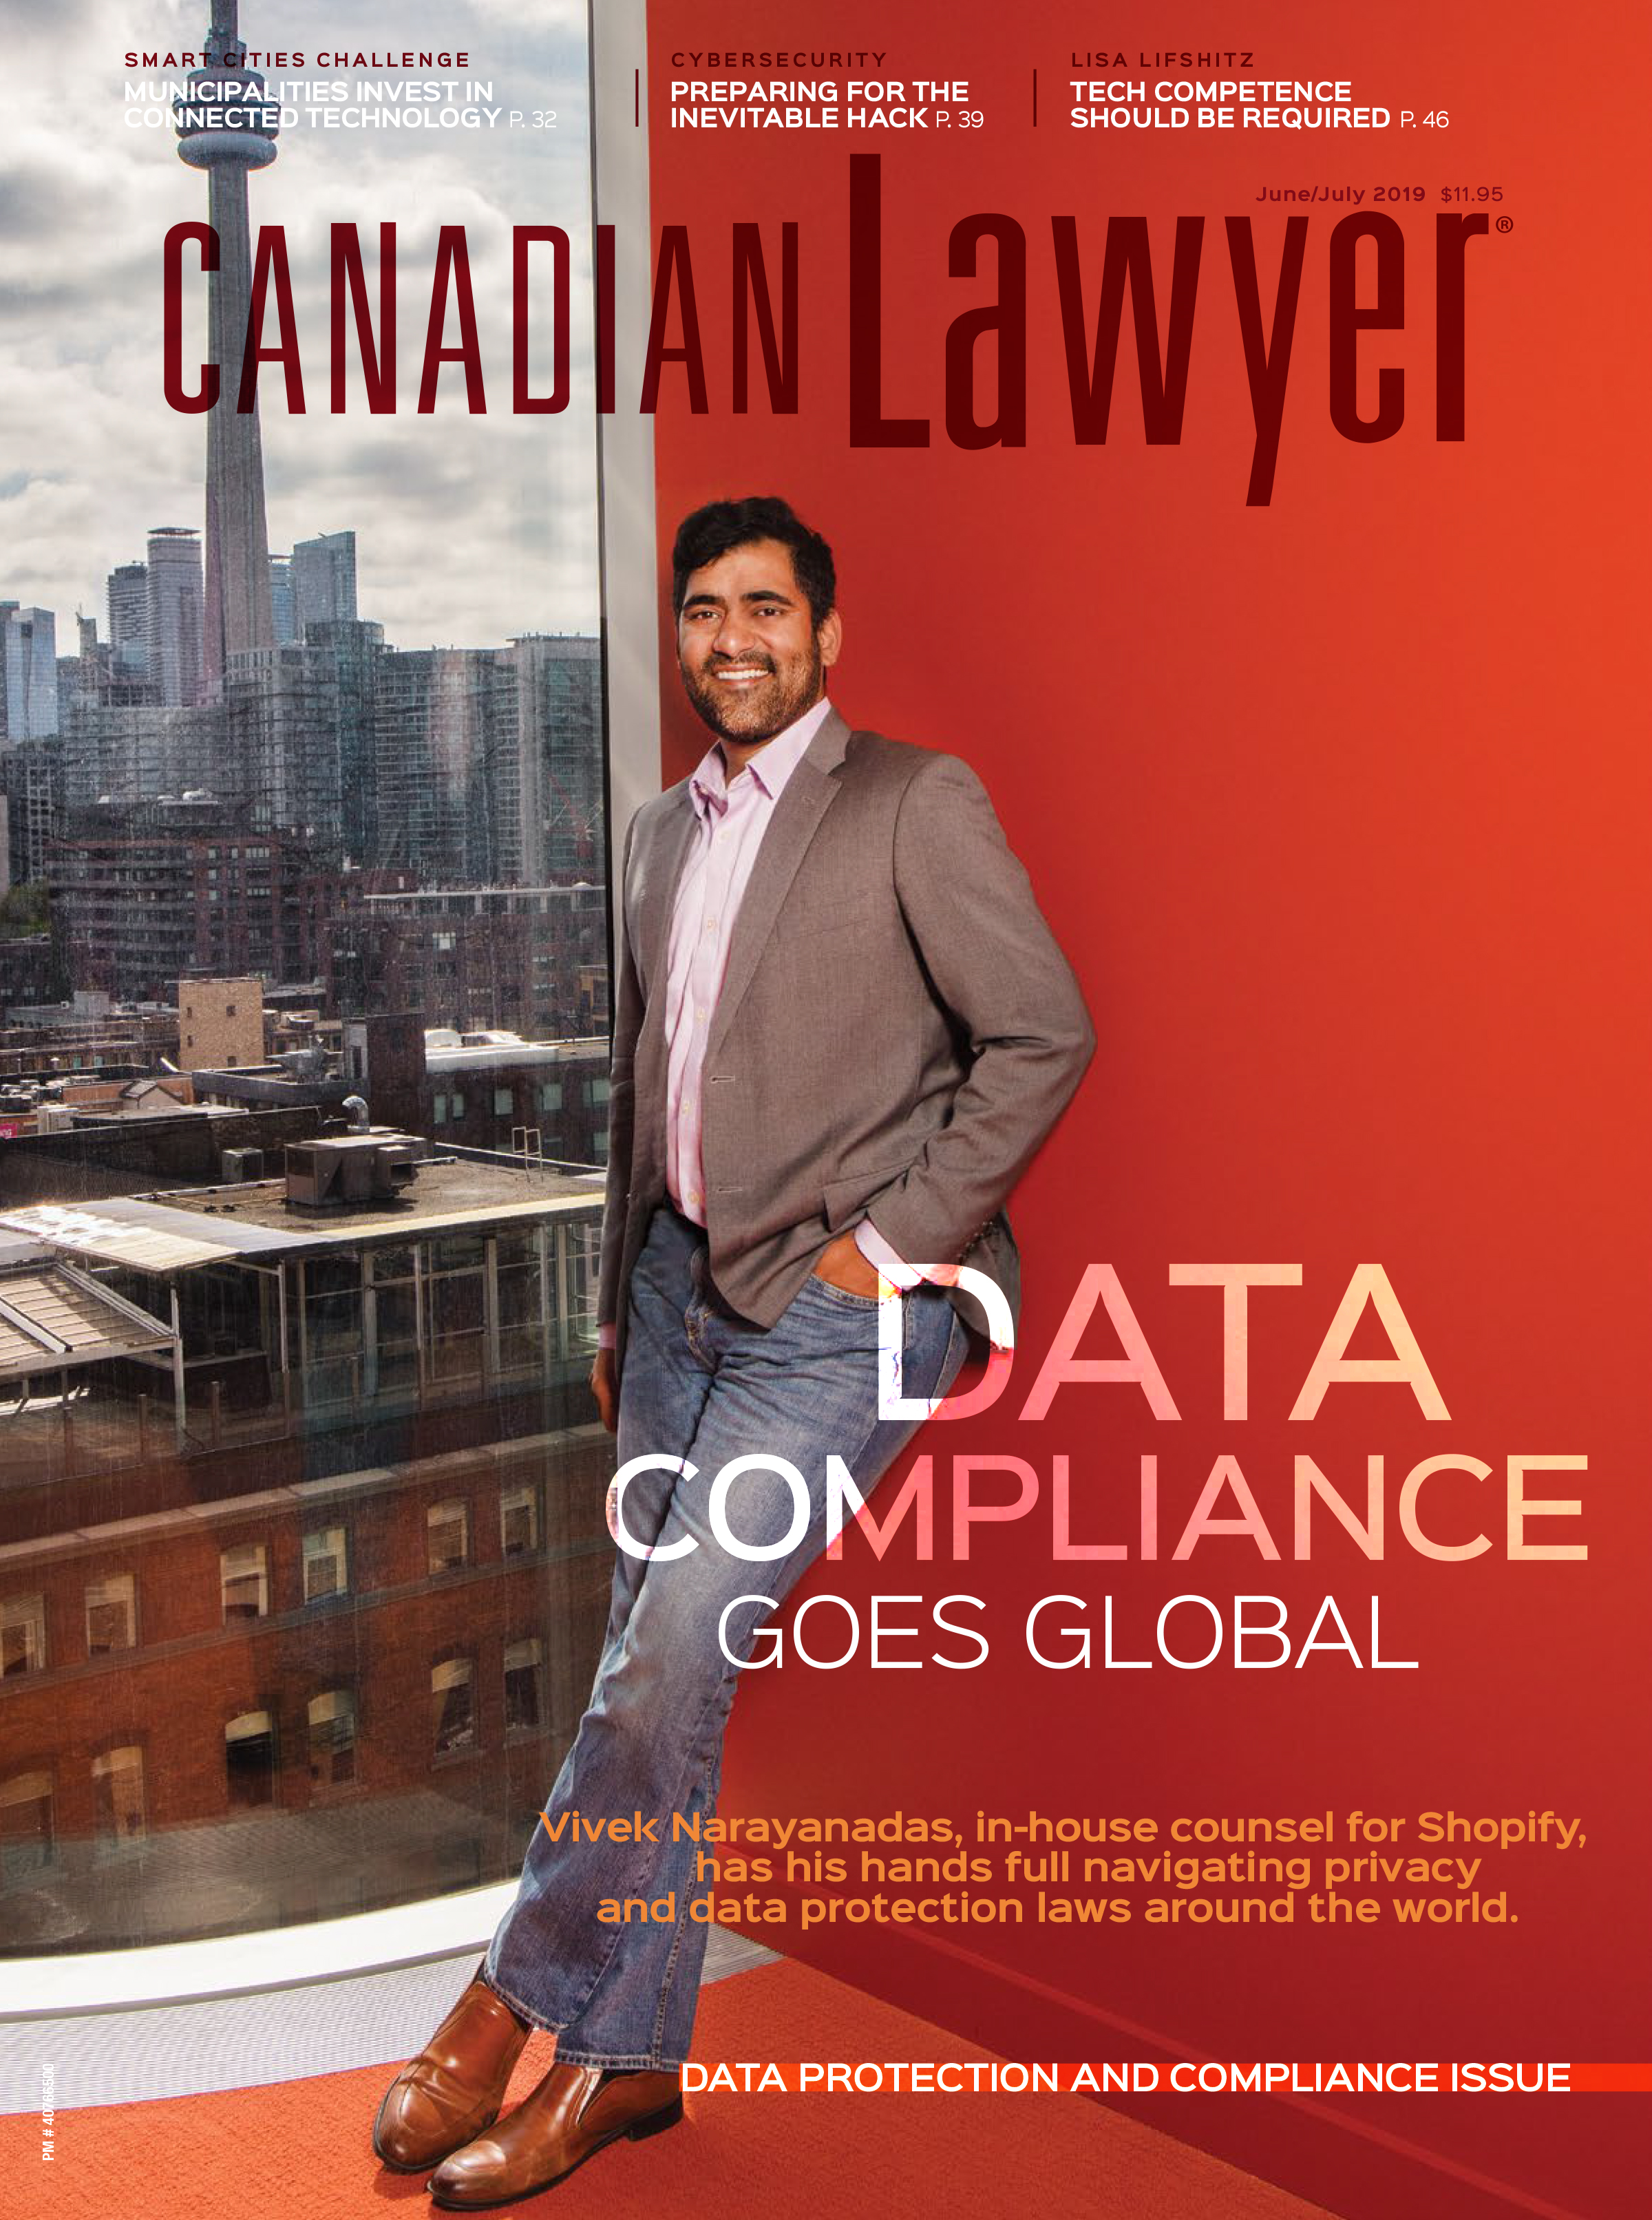 Preparing for the inevitable hack | Canadian Lawyer Mag